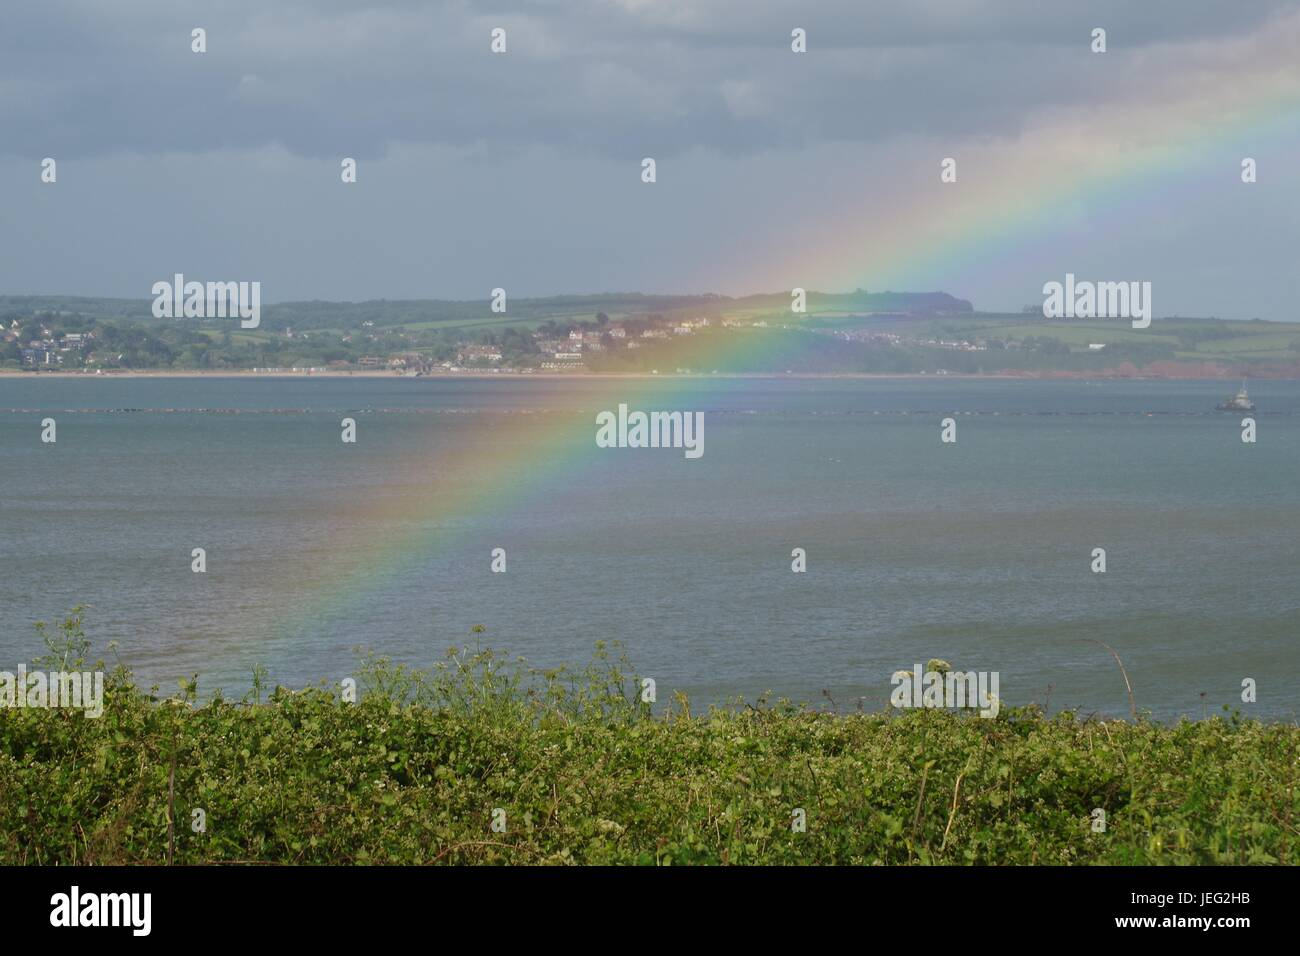 Rainbow Over the English Channel from Langstone Rock, Dawlish, UK. June, 2017. - Stock Image